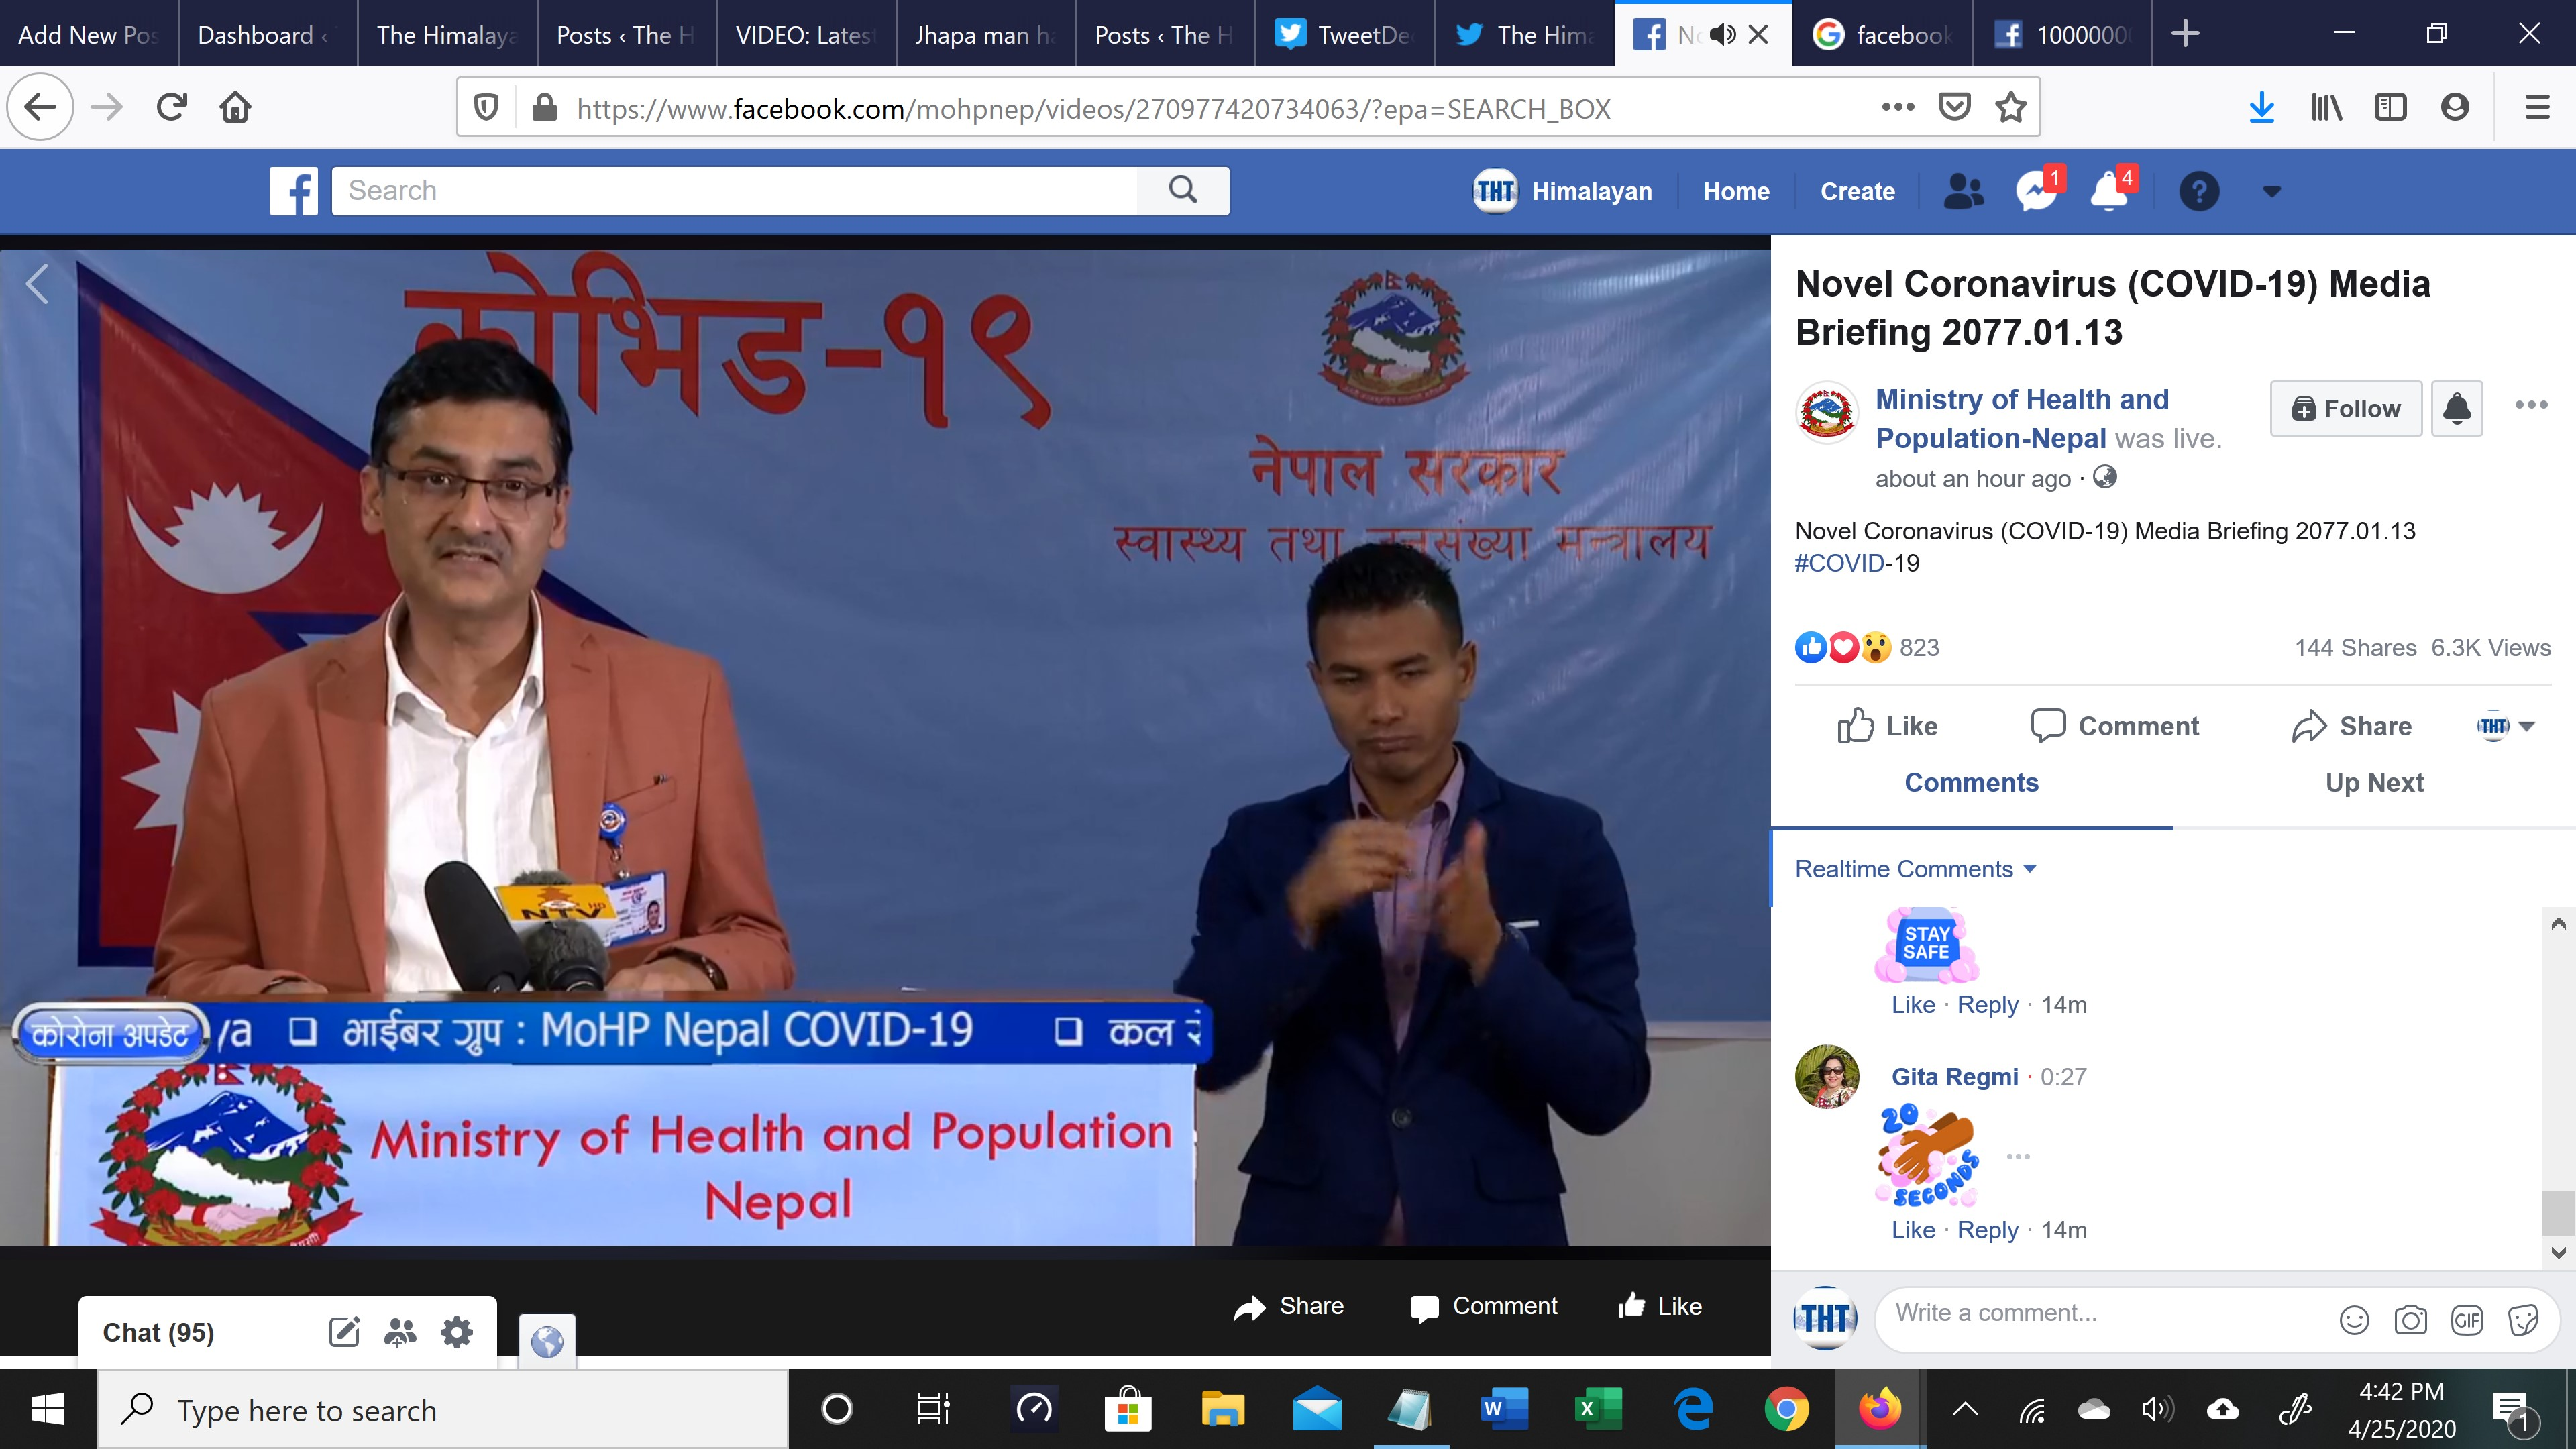 A screenshot of media briefing on COVID-19 by the Ministry of Health and Population (MoHP), on Saturday, April 25, 2020.